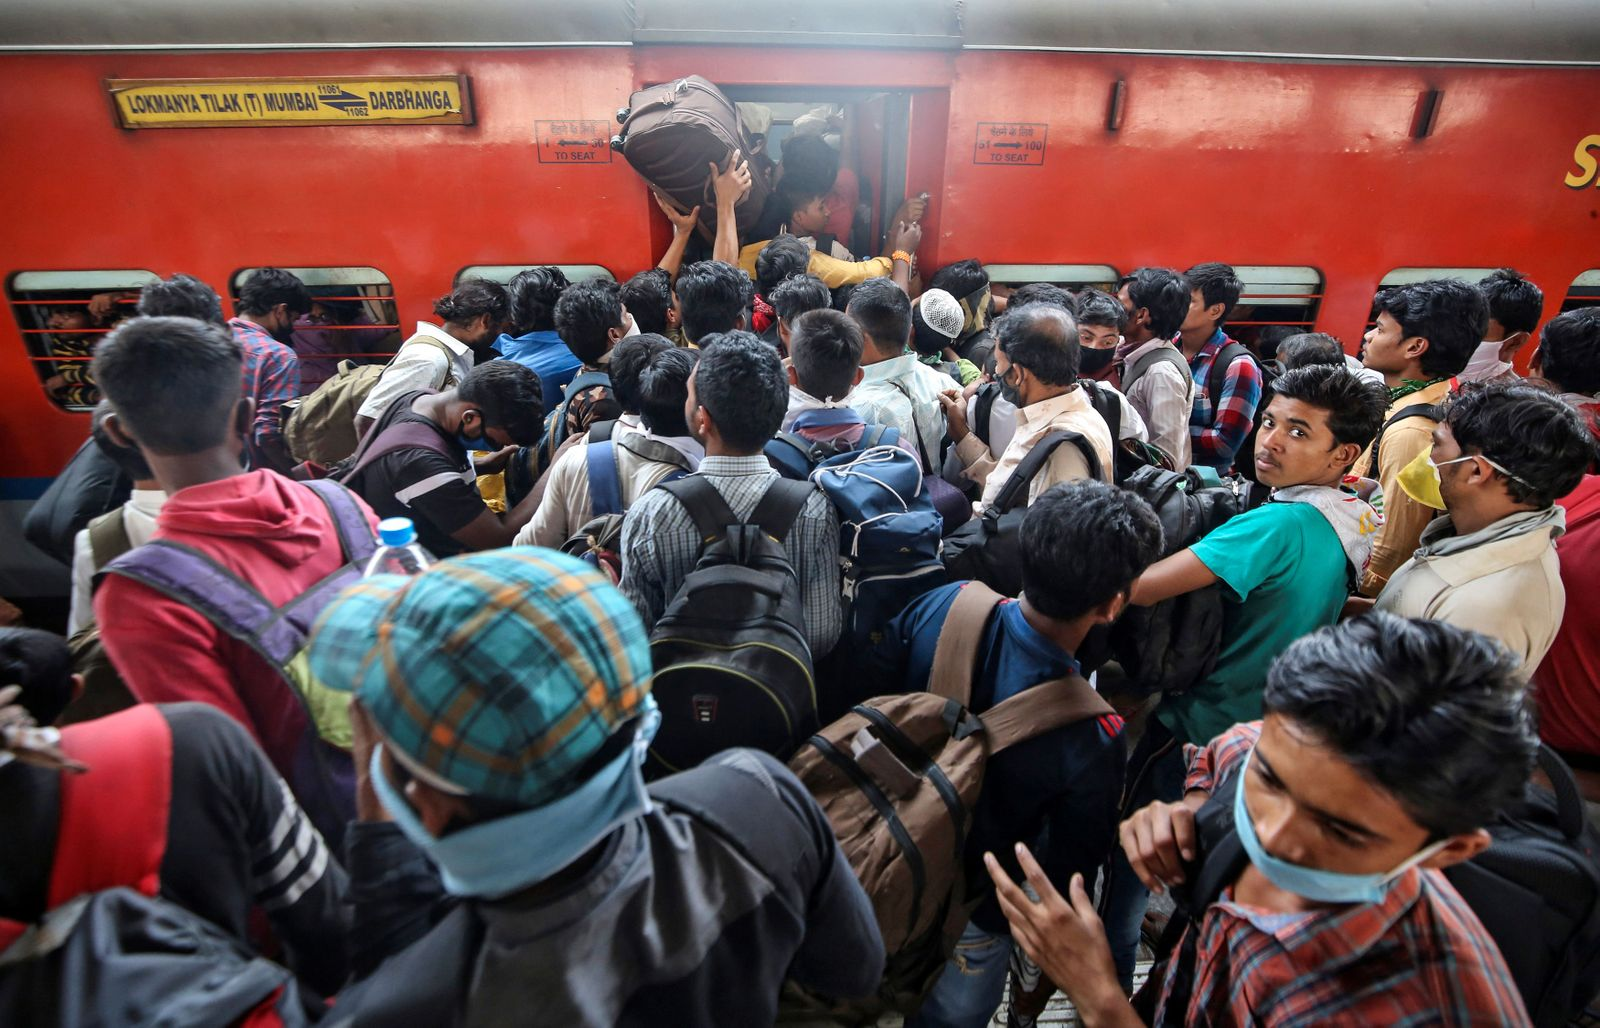 Migrant workers and their families board an overcrowded passenger train, after government imposed restrictions on public gatherings in attempts to prevent spread of coronavirus disease, in Mumbai